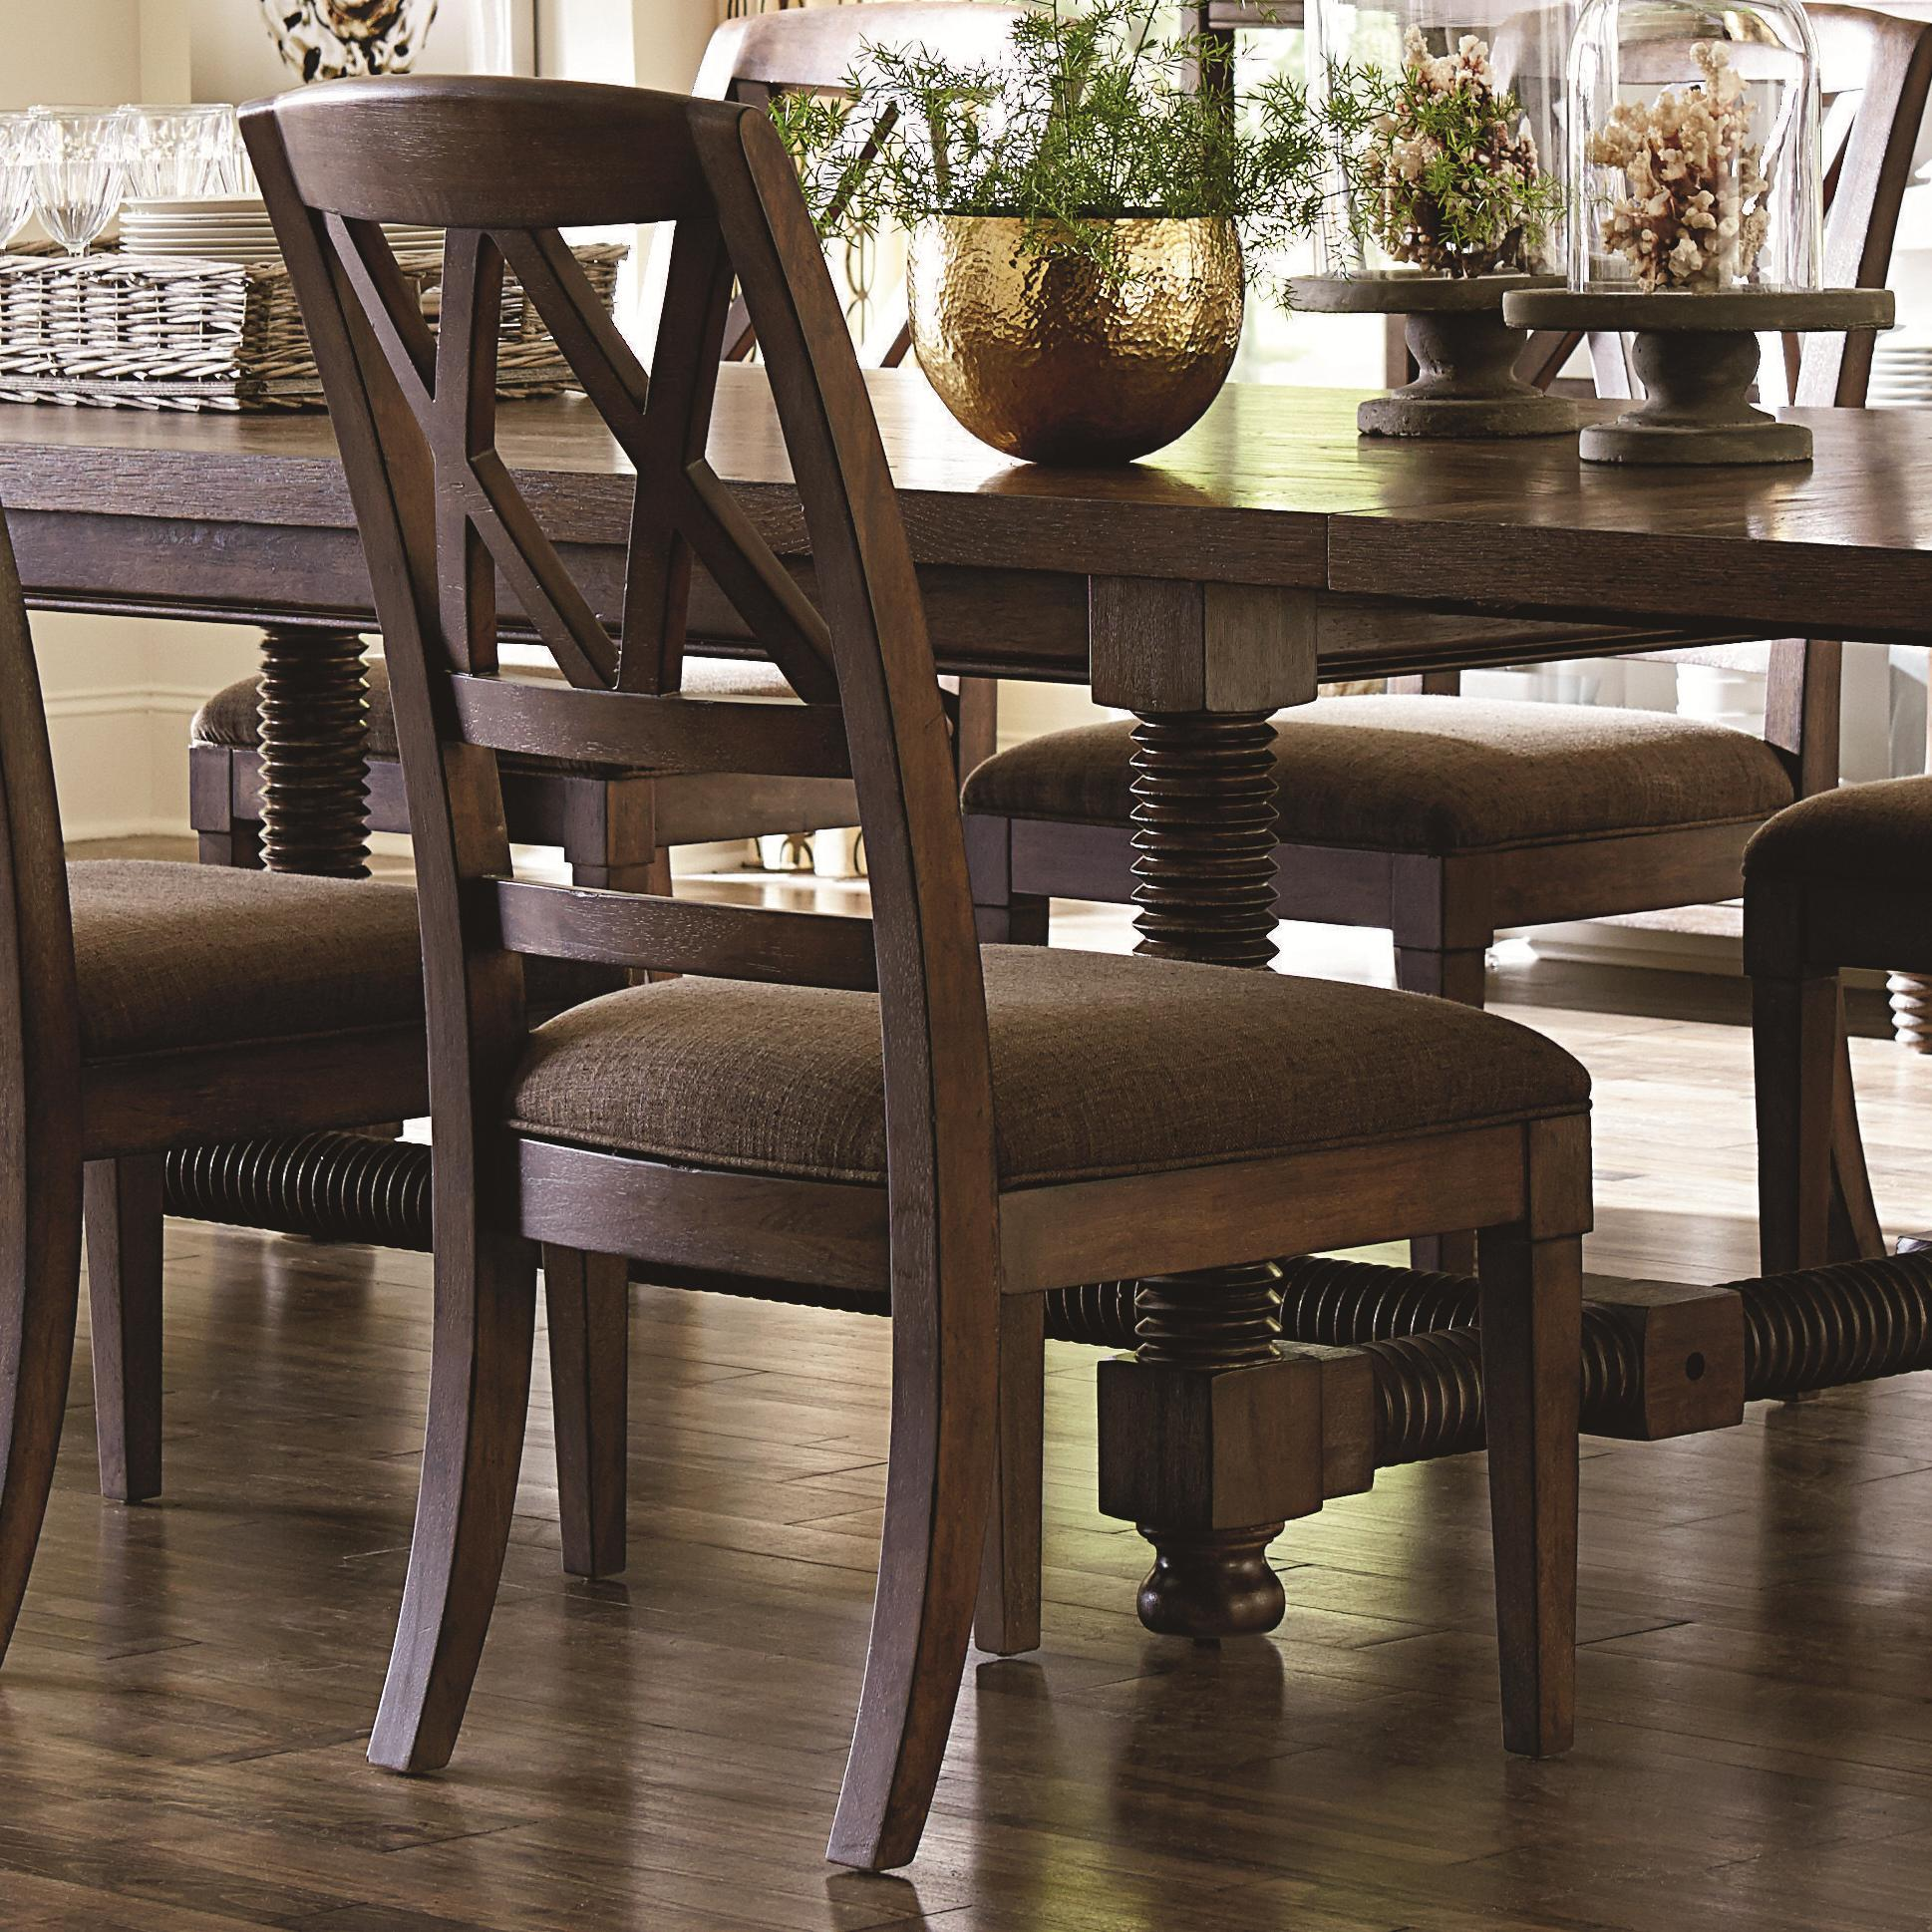 Bassett pass Dining Side Chair with X Back and Upholstered Seat